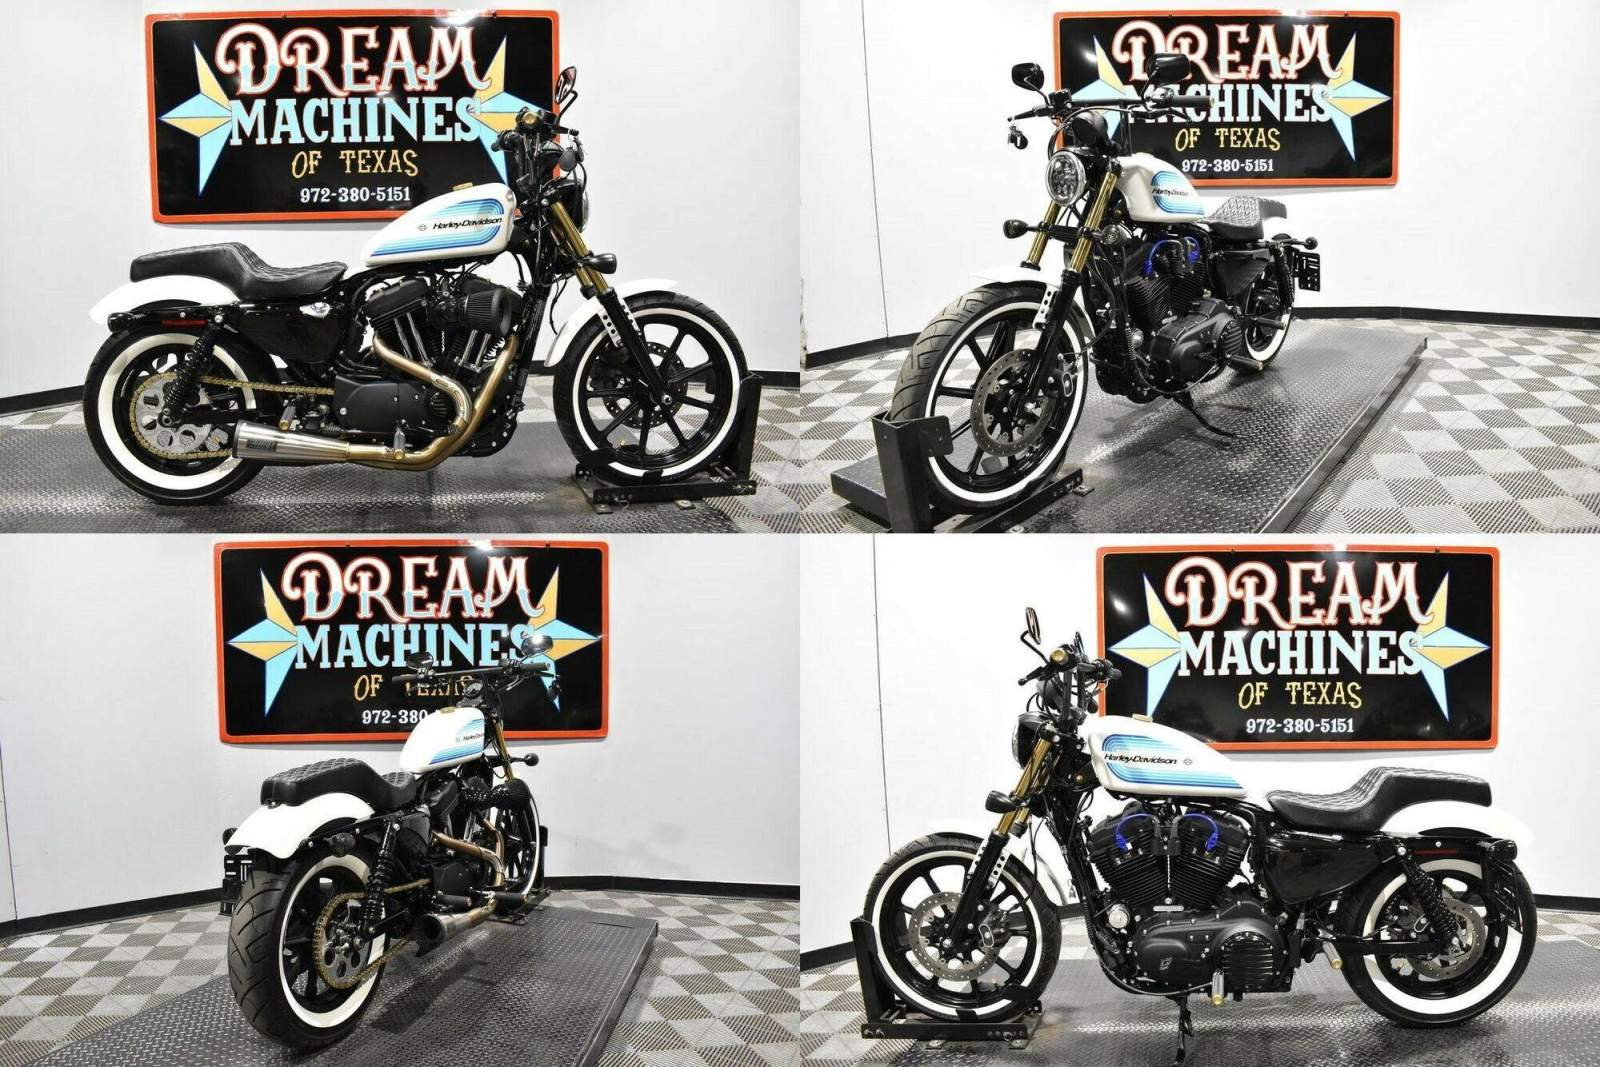 2019 Harley-Davidson XL 1200NS - Sportster Iron 1200 White used for sale craigslist